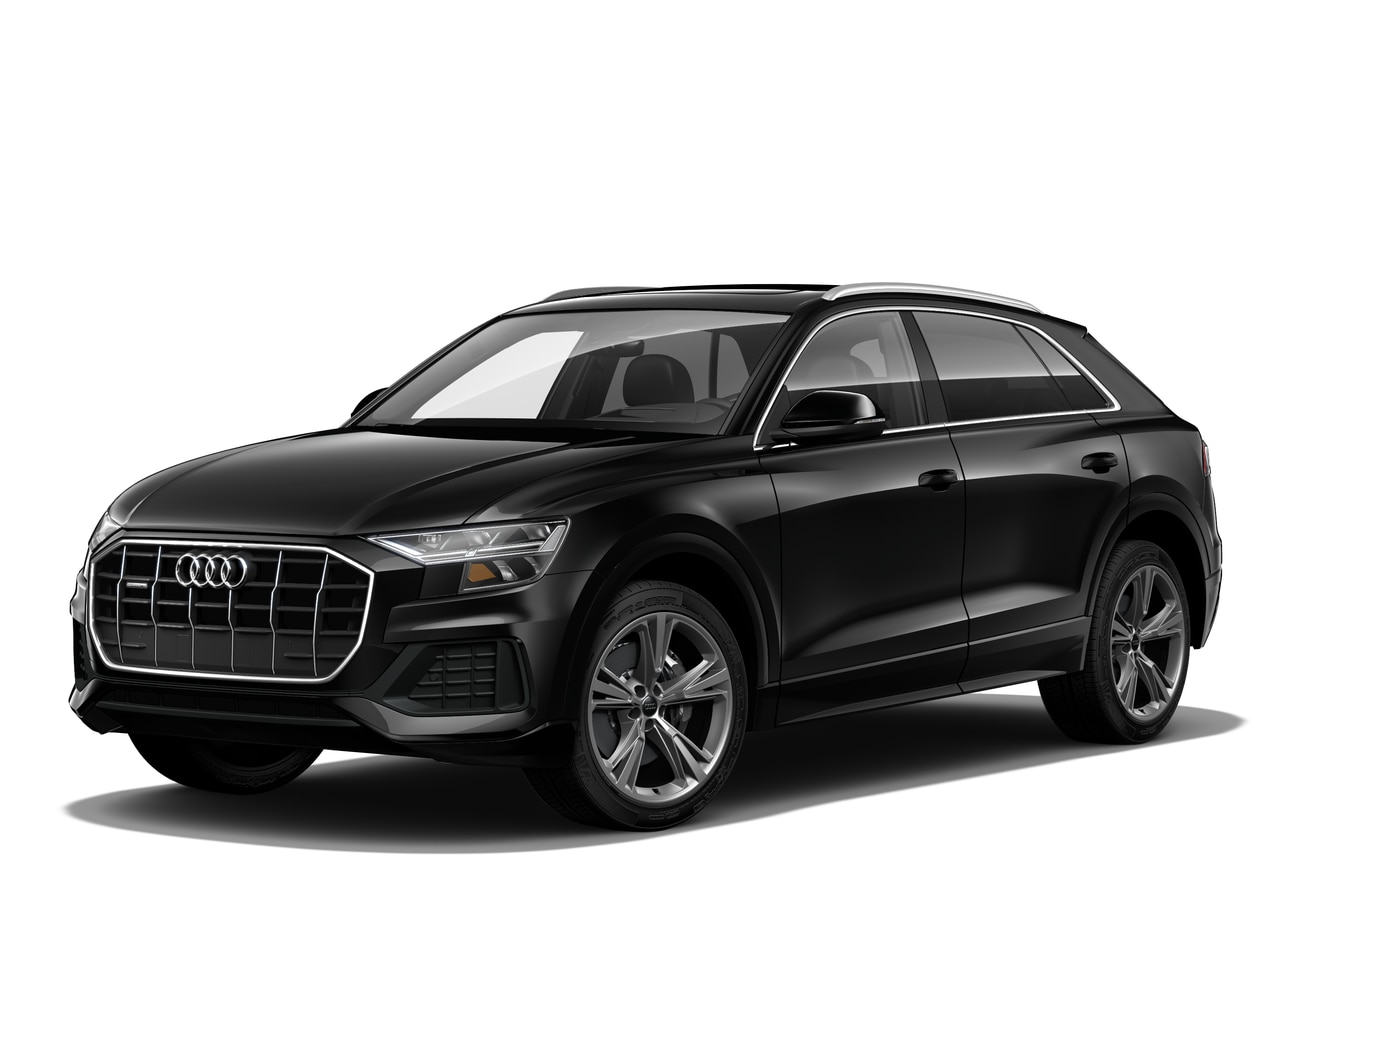 New 2019 Audi Q8 SUV near Atlanta, GA